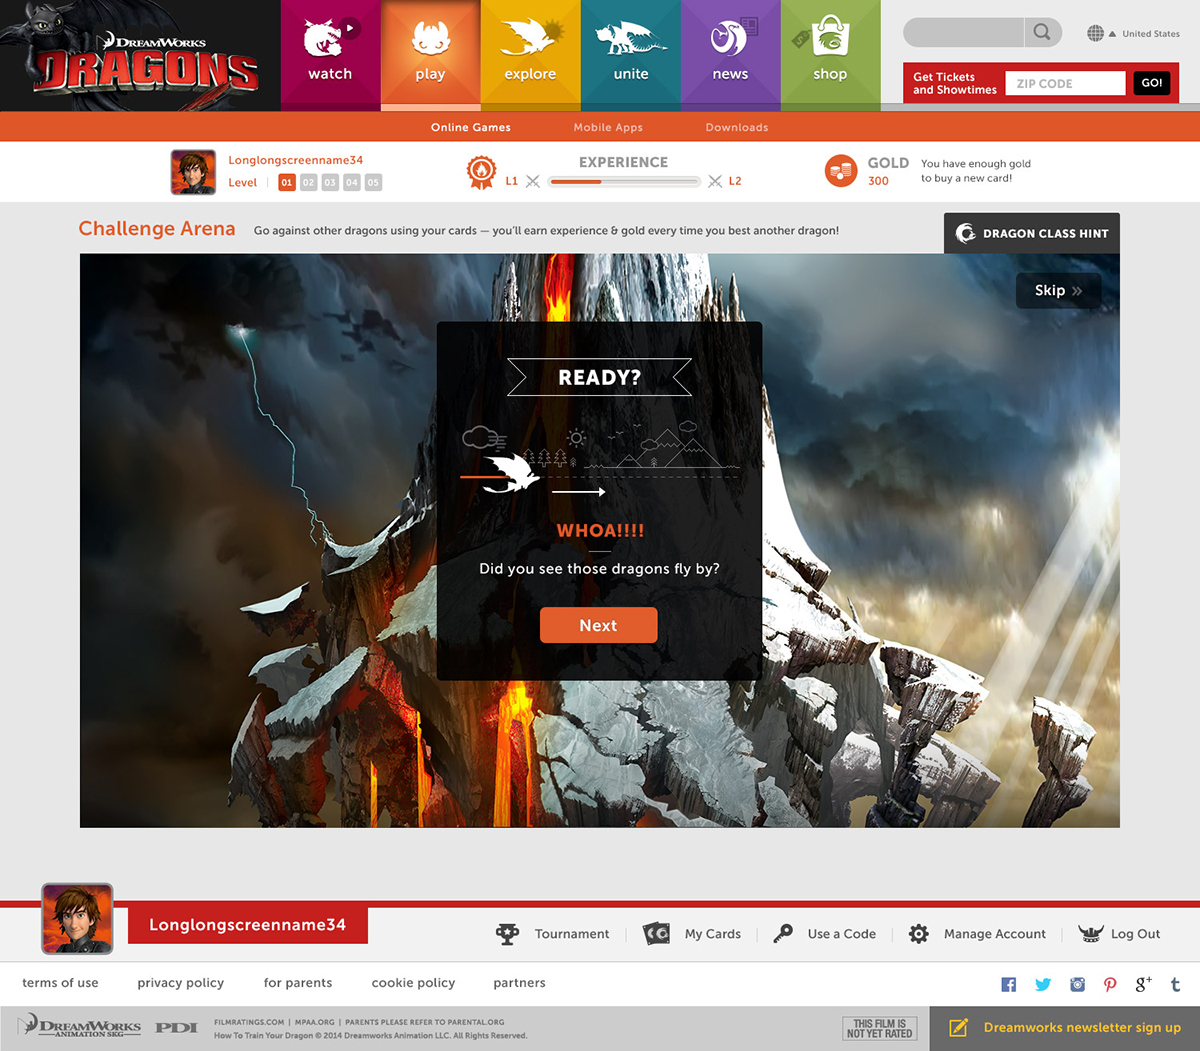 How to train your dragon 2 card game on behance agency tvgla httptvgla ccuart Images